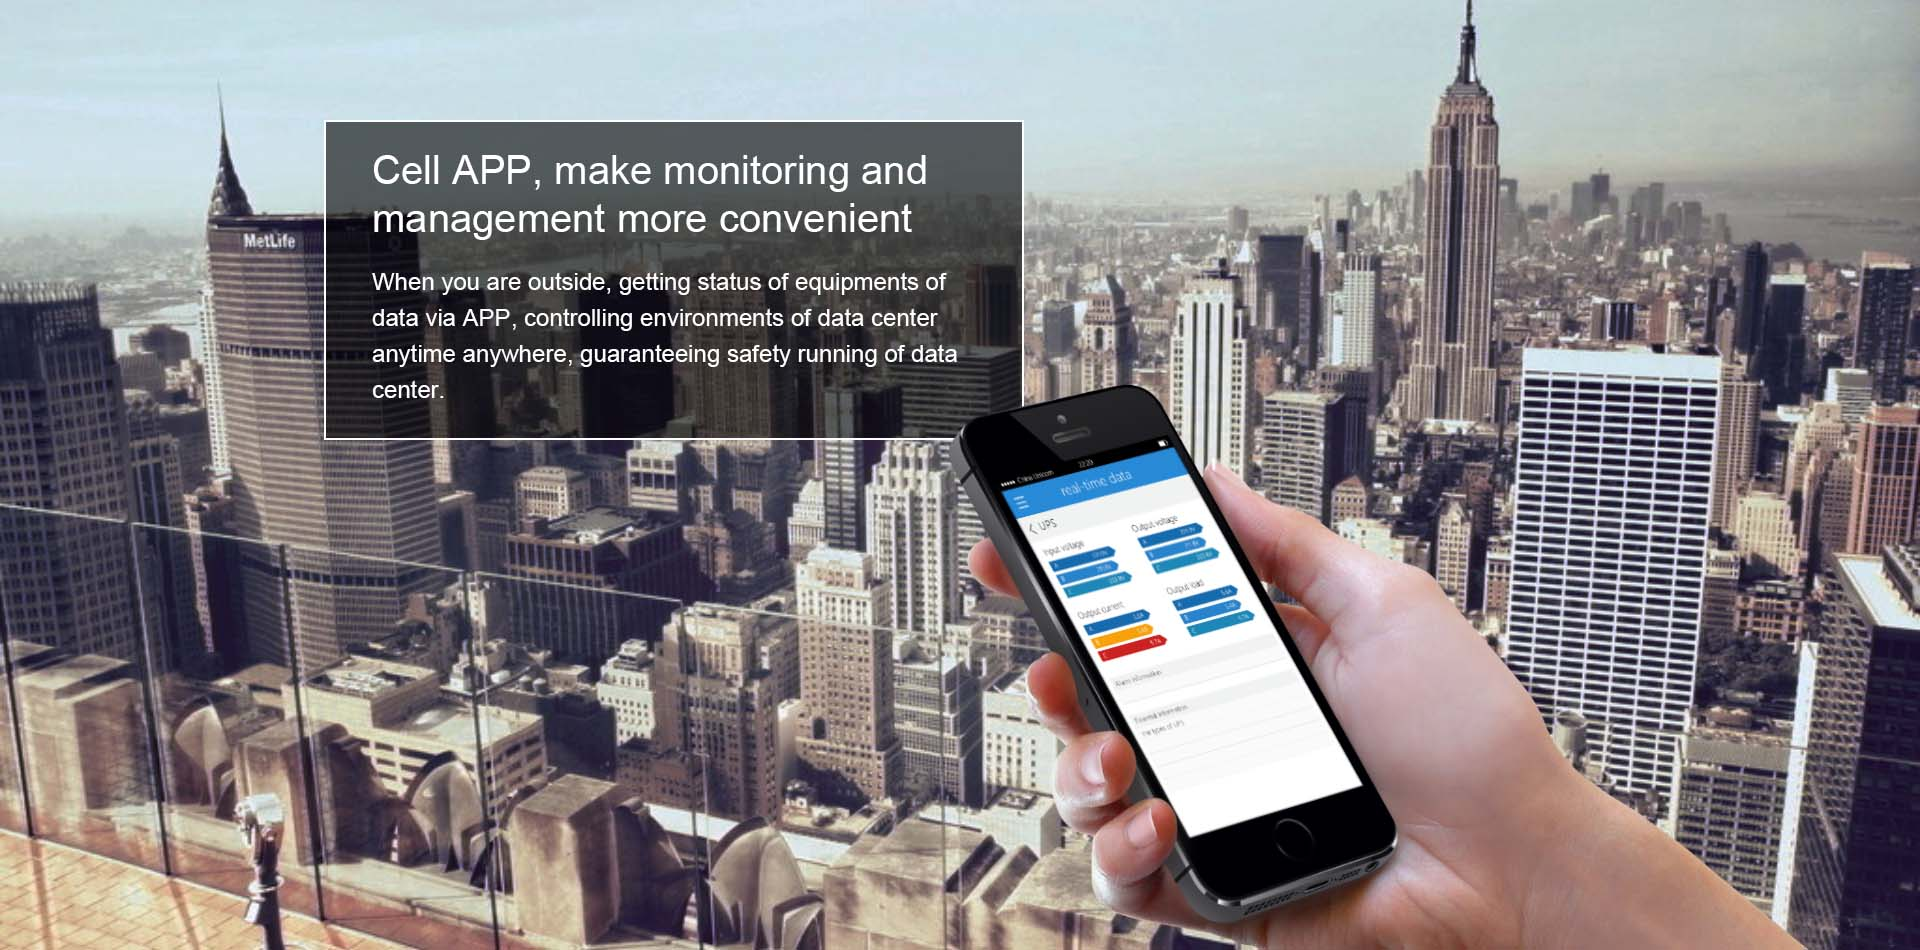 Cell APP,make monitoring and management more convenient